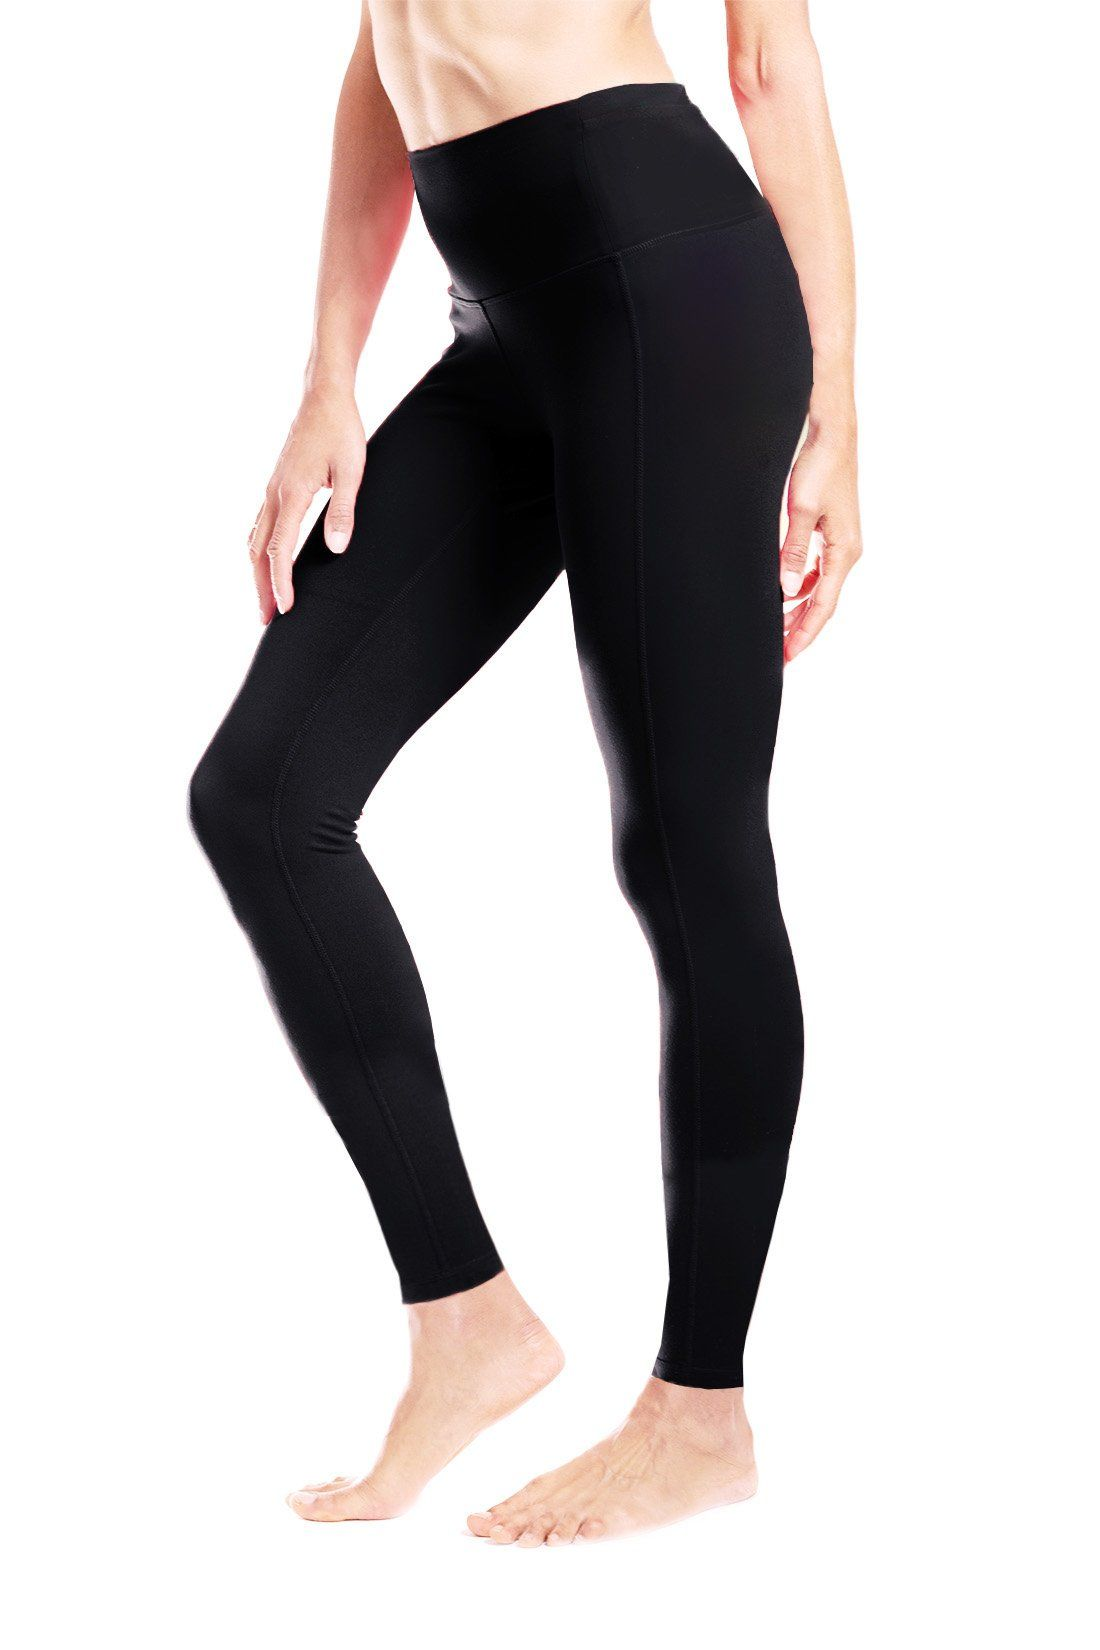 0a3f266529 Yogipace (Petite Length) Women's High Waisted Yoga Leggings Workout Gym  Active Pants Back Pocket